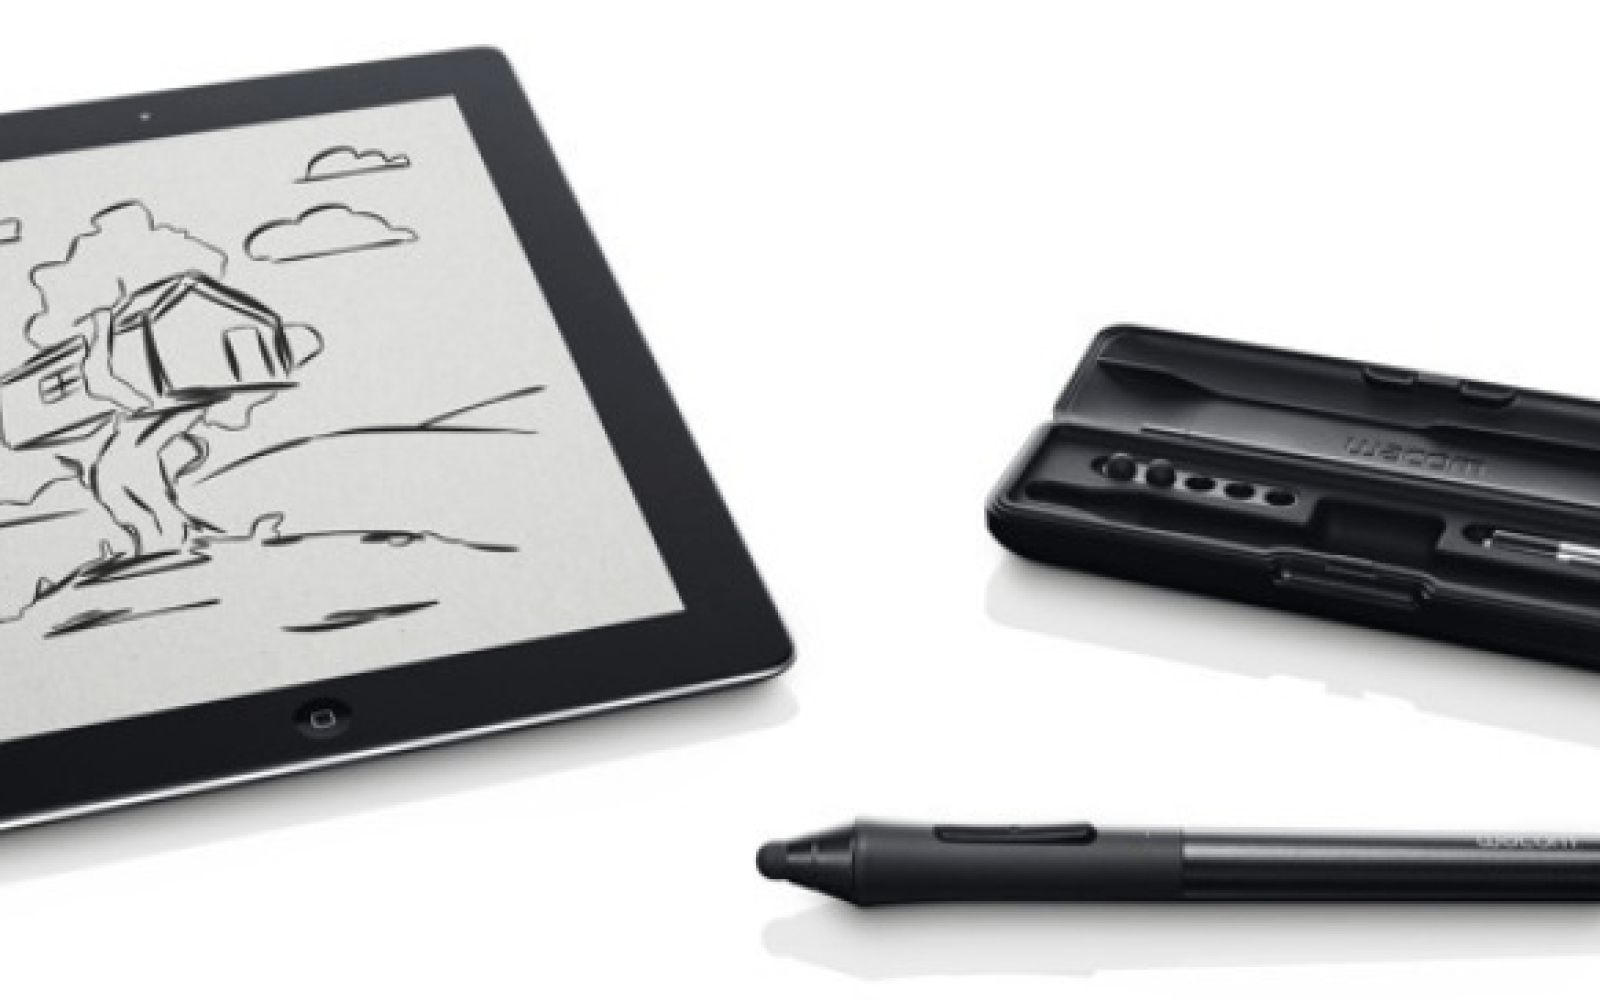 Wacom announces affordable pressure-sensitive Creative Stylus for drawing & painting on an iPad